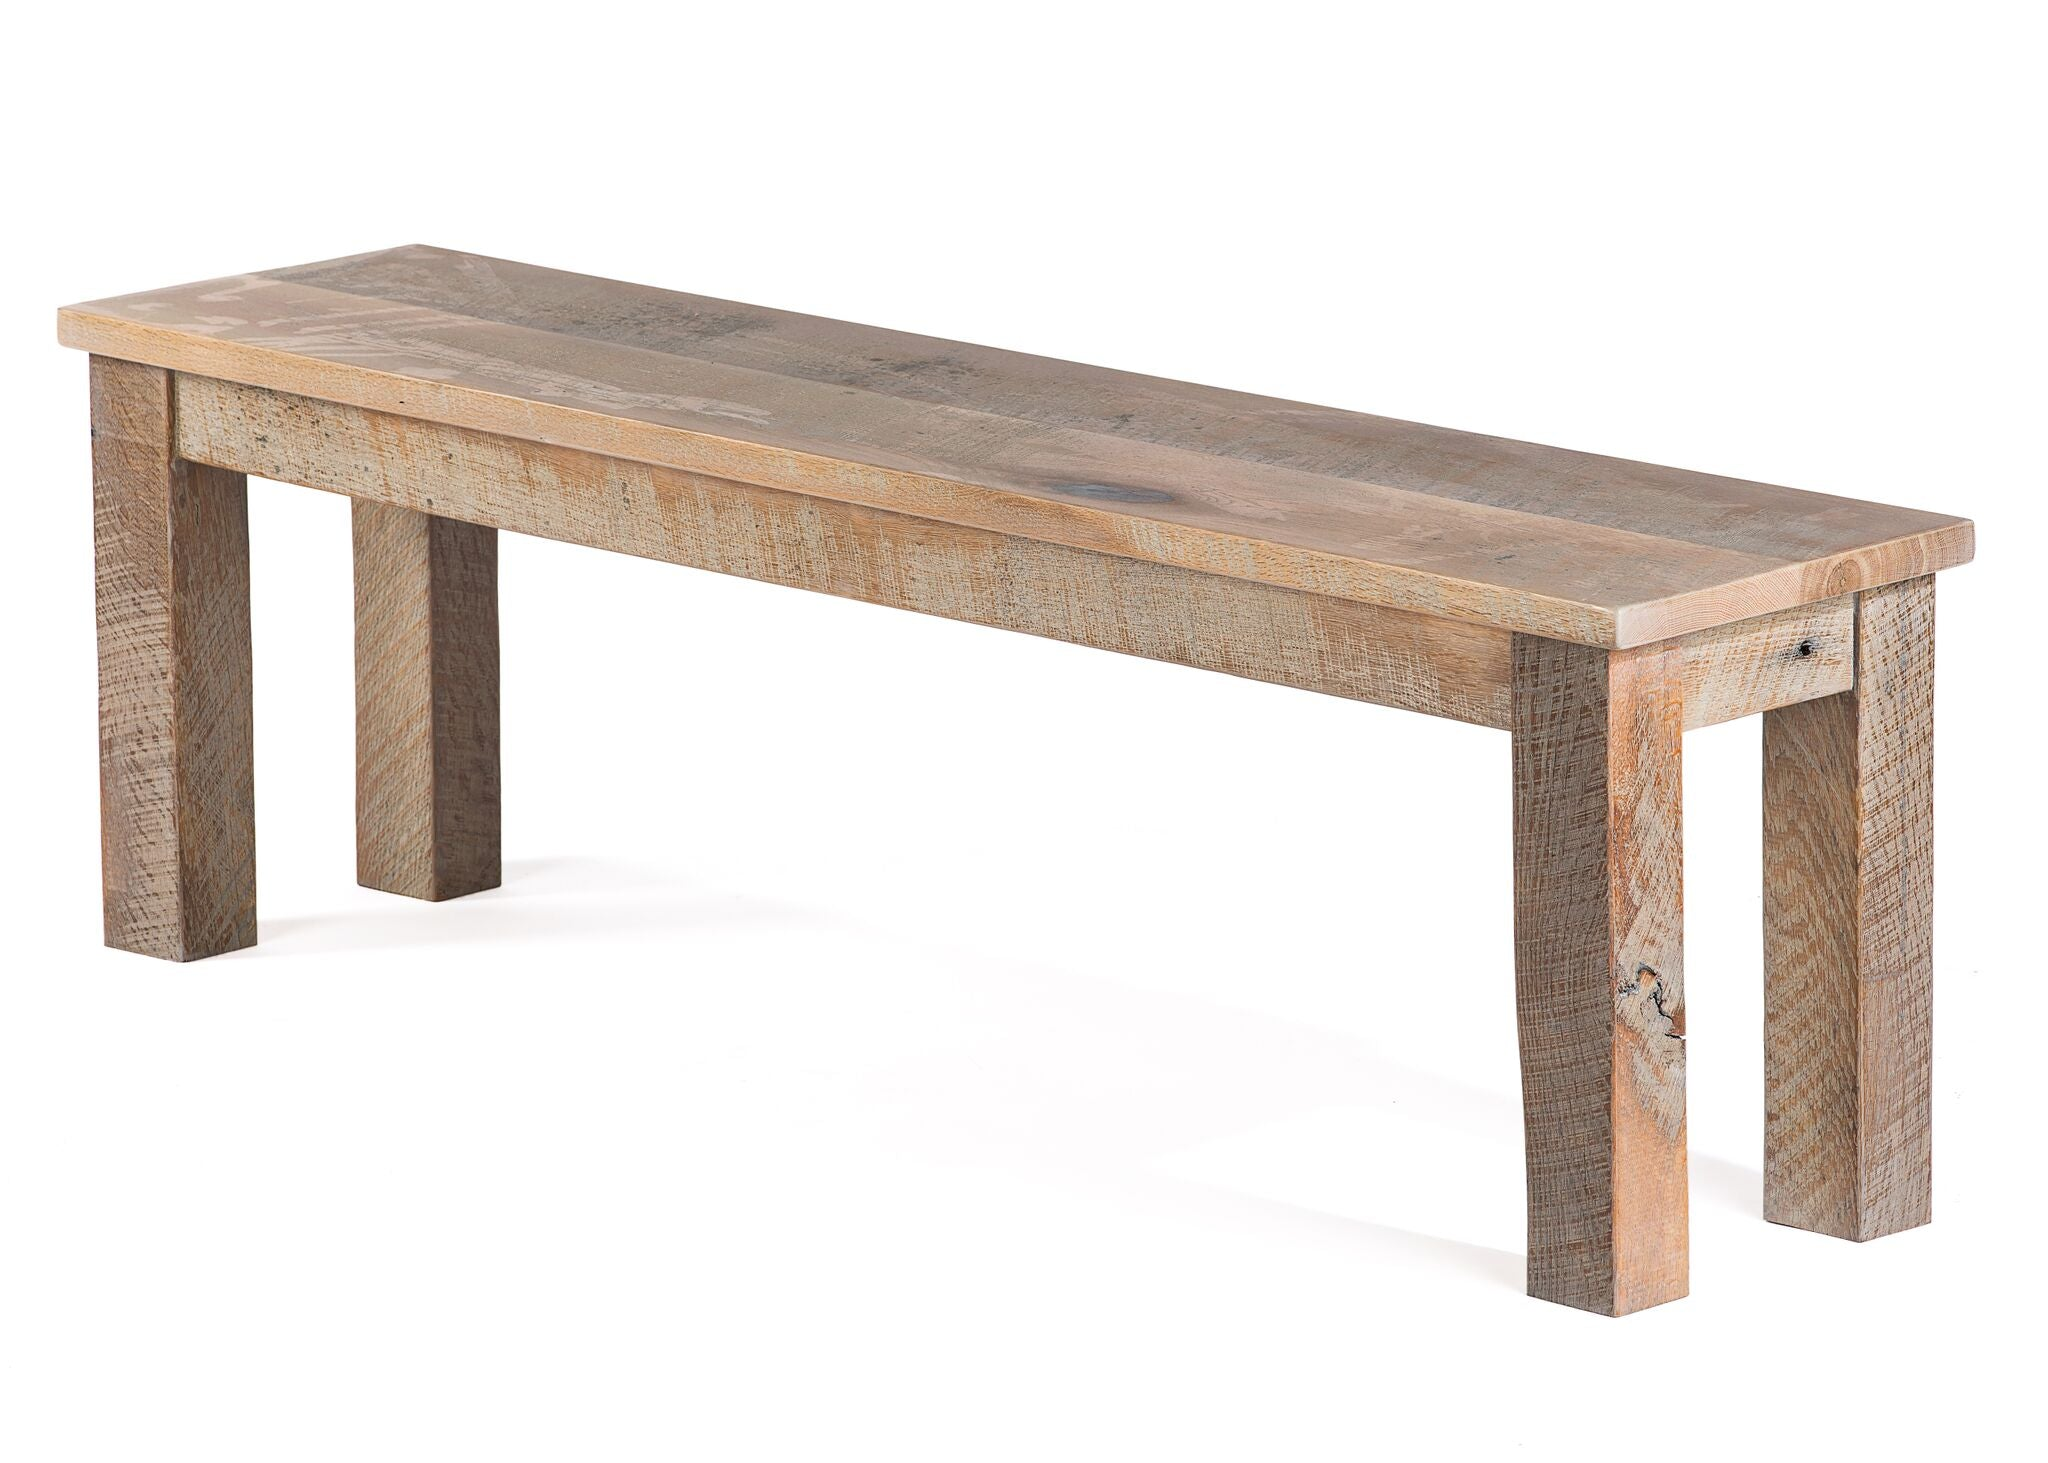 "Wood Benches | Farmhouse Bench | CLASSIC | Dark Brown on Reclaimed Oak | CUSTOM SIZE W 14 H 18 | 1.5"" Standard